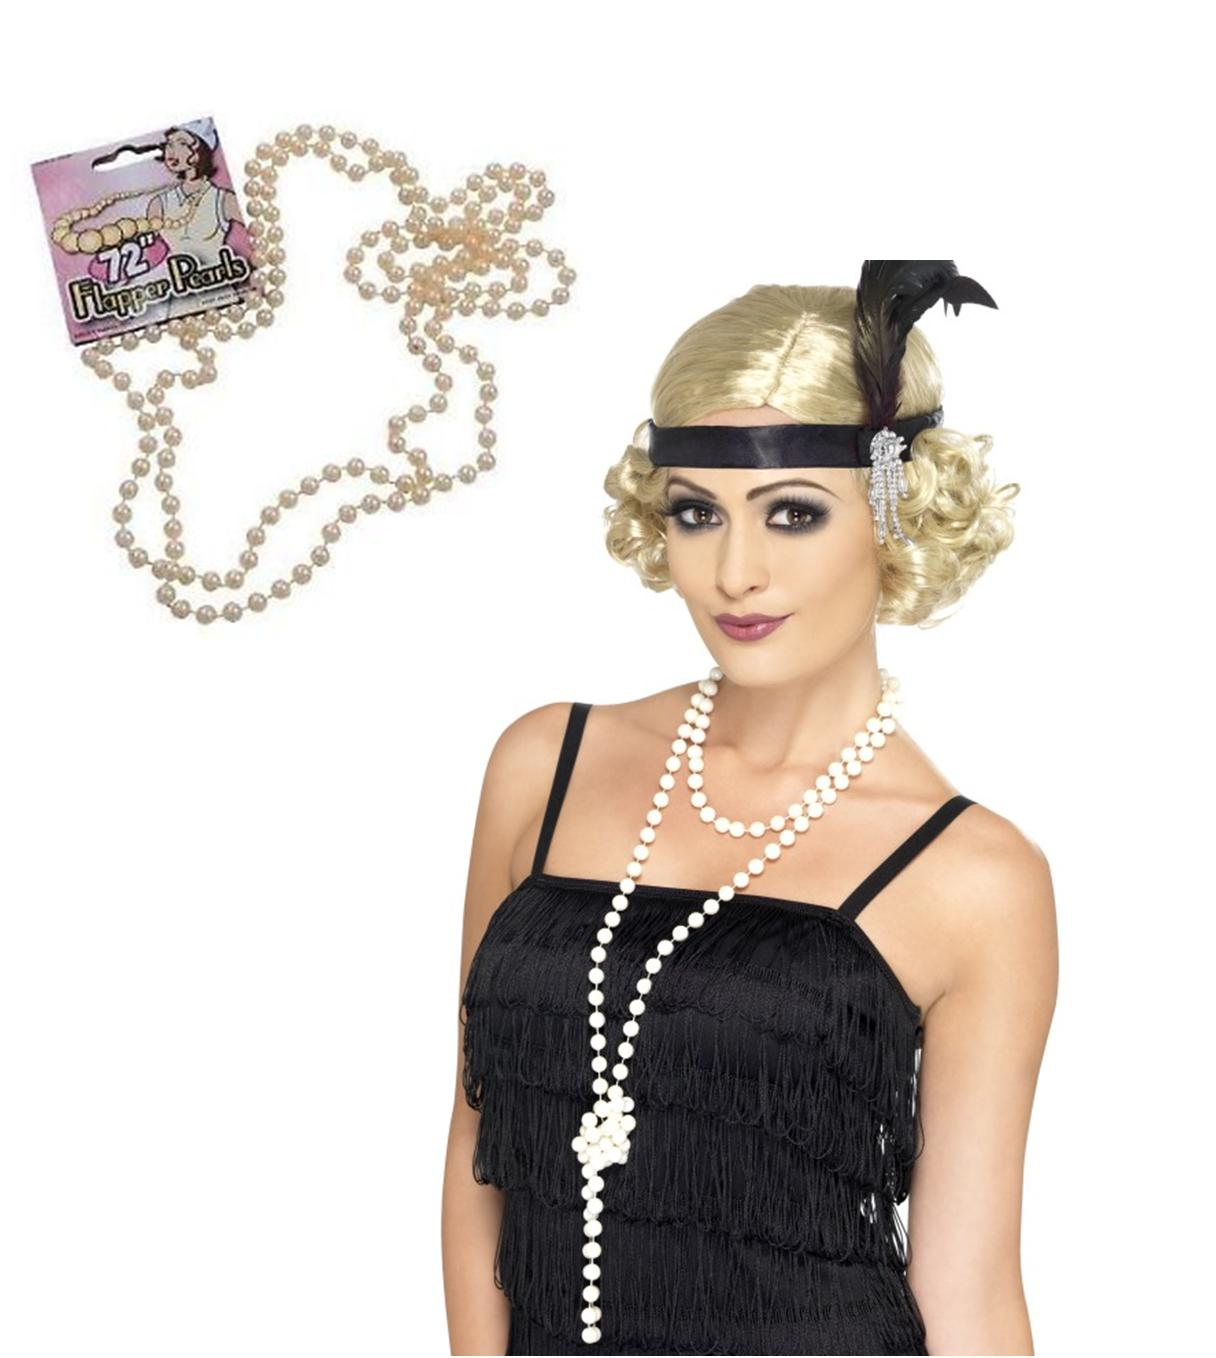 Details about flapper costume necklace ladies 20s fancy dress 1920s - 1920s 20s Gangster Flapper Charleston Gatsby Fancy Dress